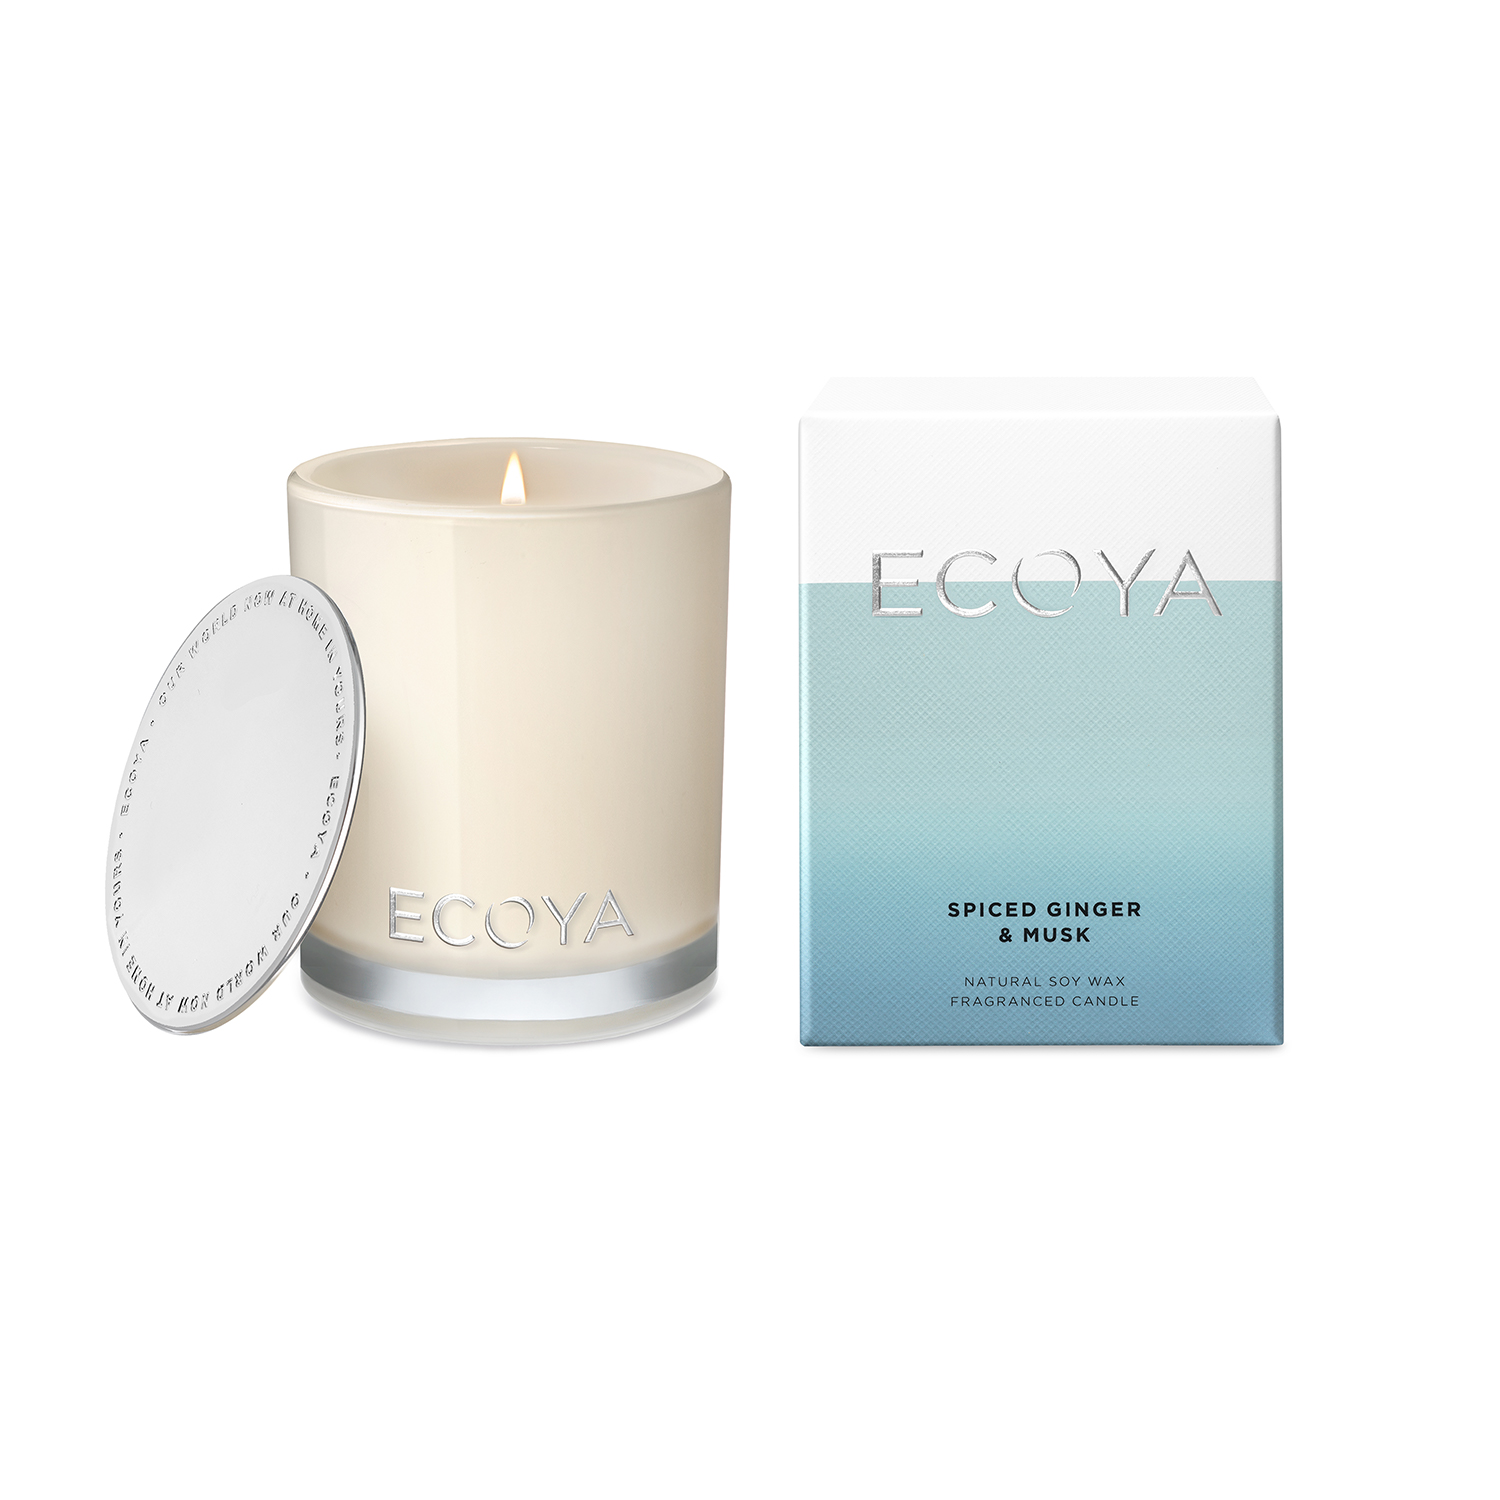 Ecoya Spiced Ginger and Musk Mini Madison Jar Candle 80g